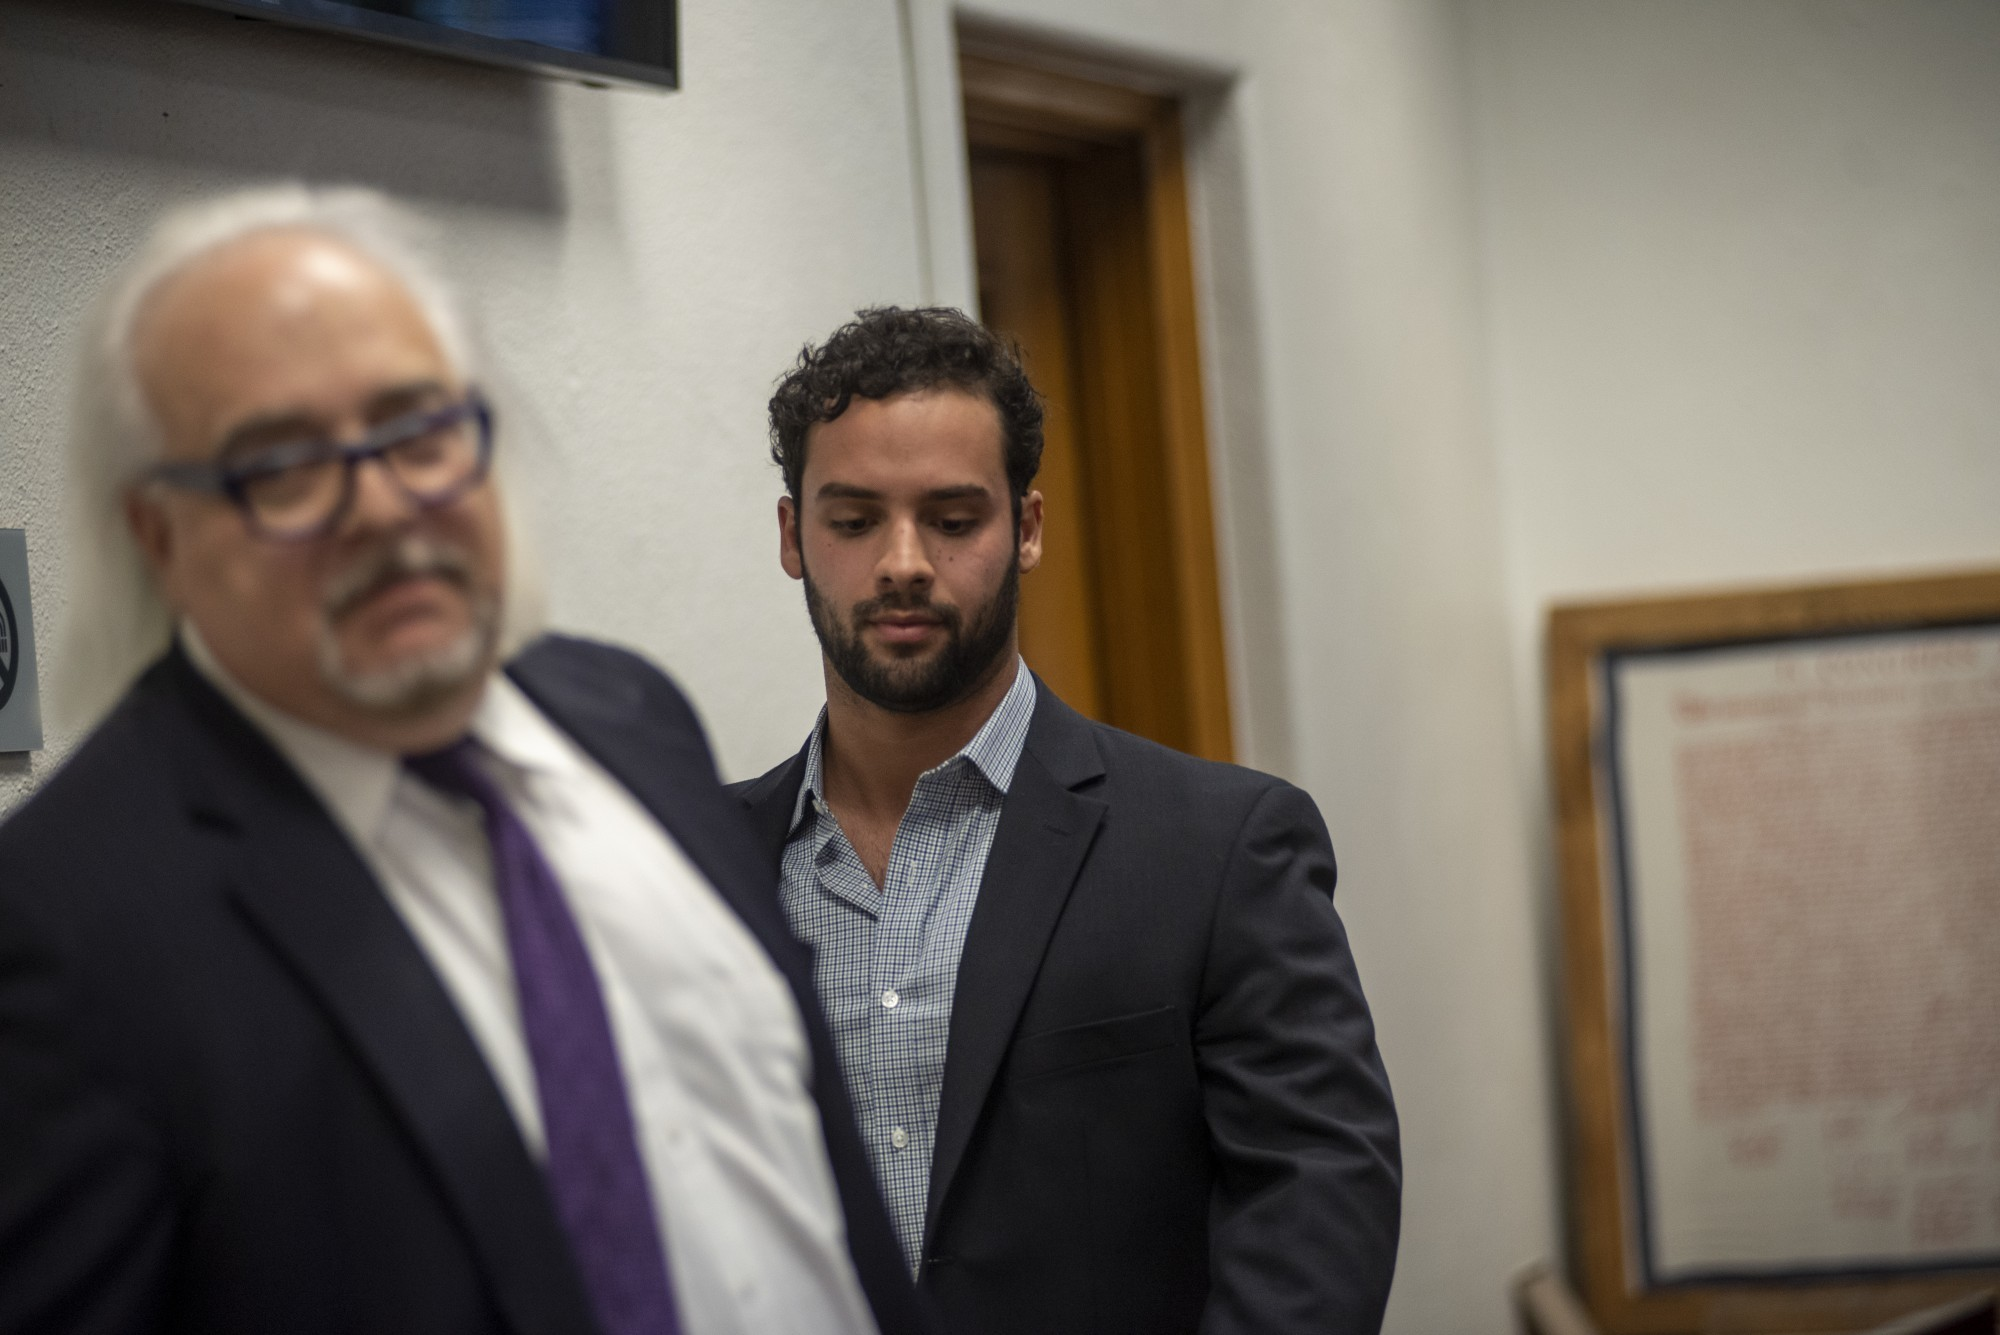 Former Ohio University student, Elijah Wahib, walks out of court behind his lawyer, Paul Wolf, after his arraignment hearing on Thursday, Nov. 21, 2019. (Kelsey Boeing | Director of Photography)